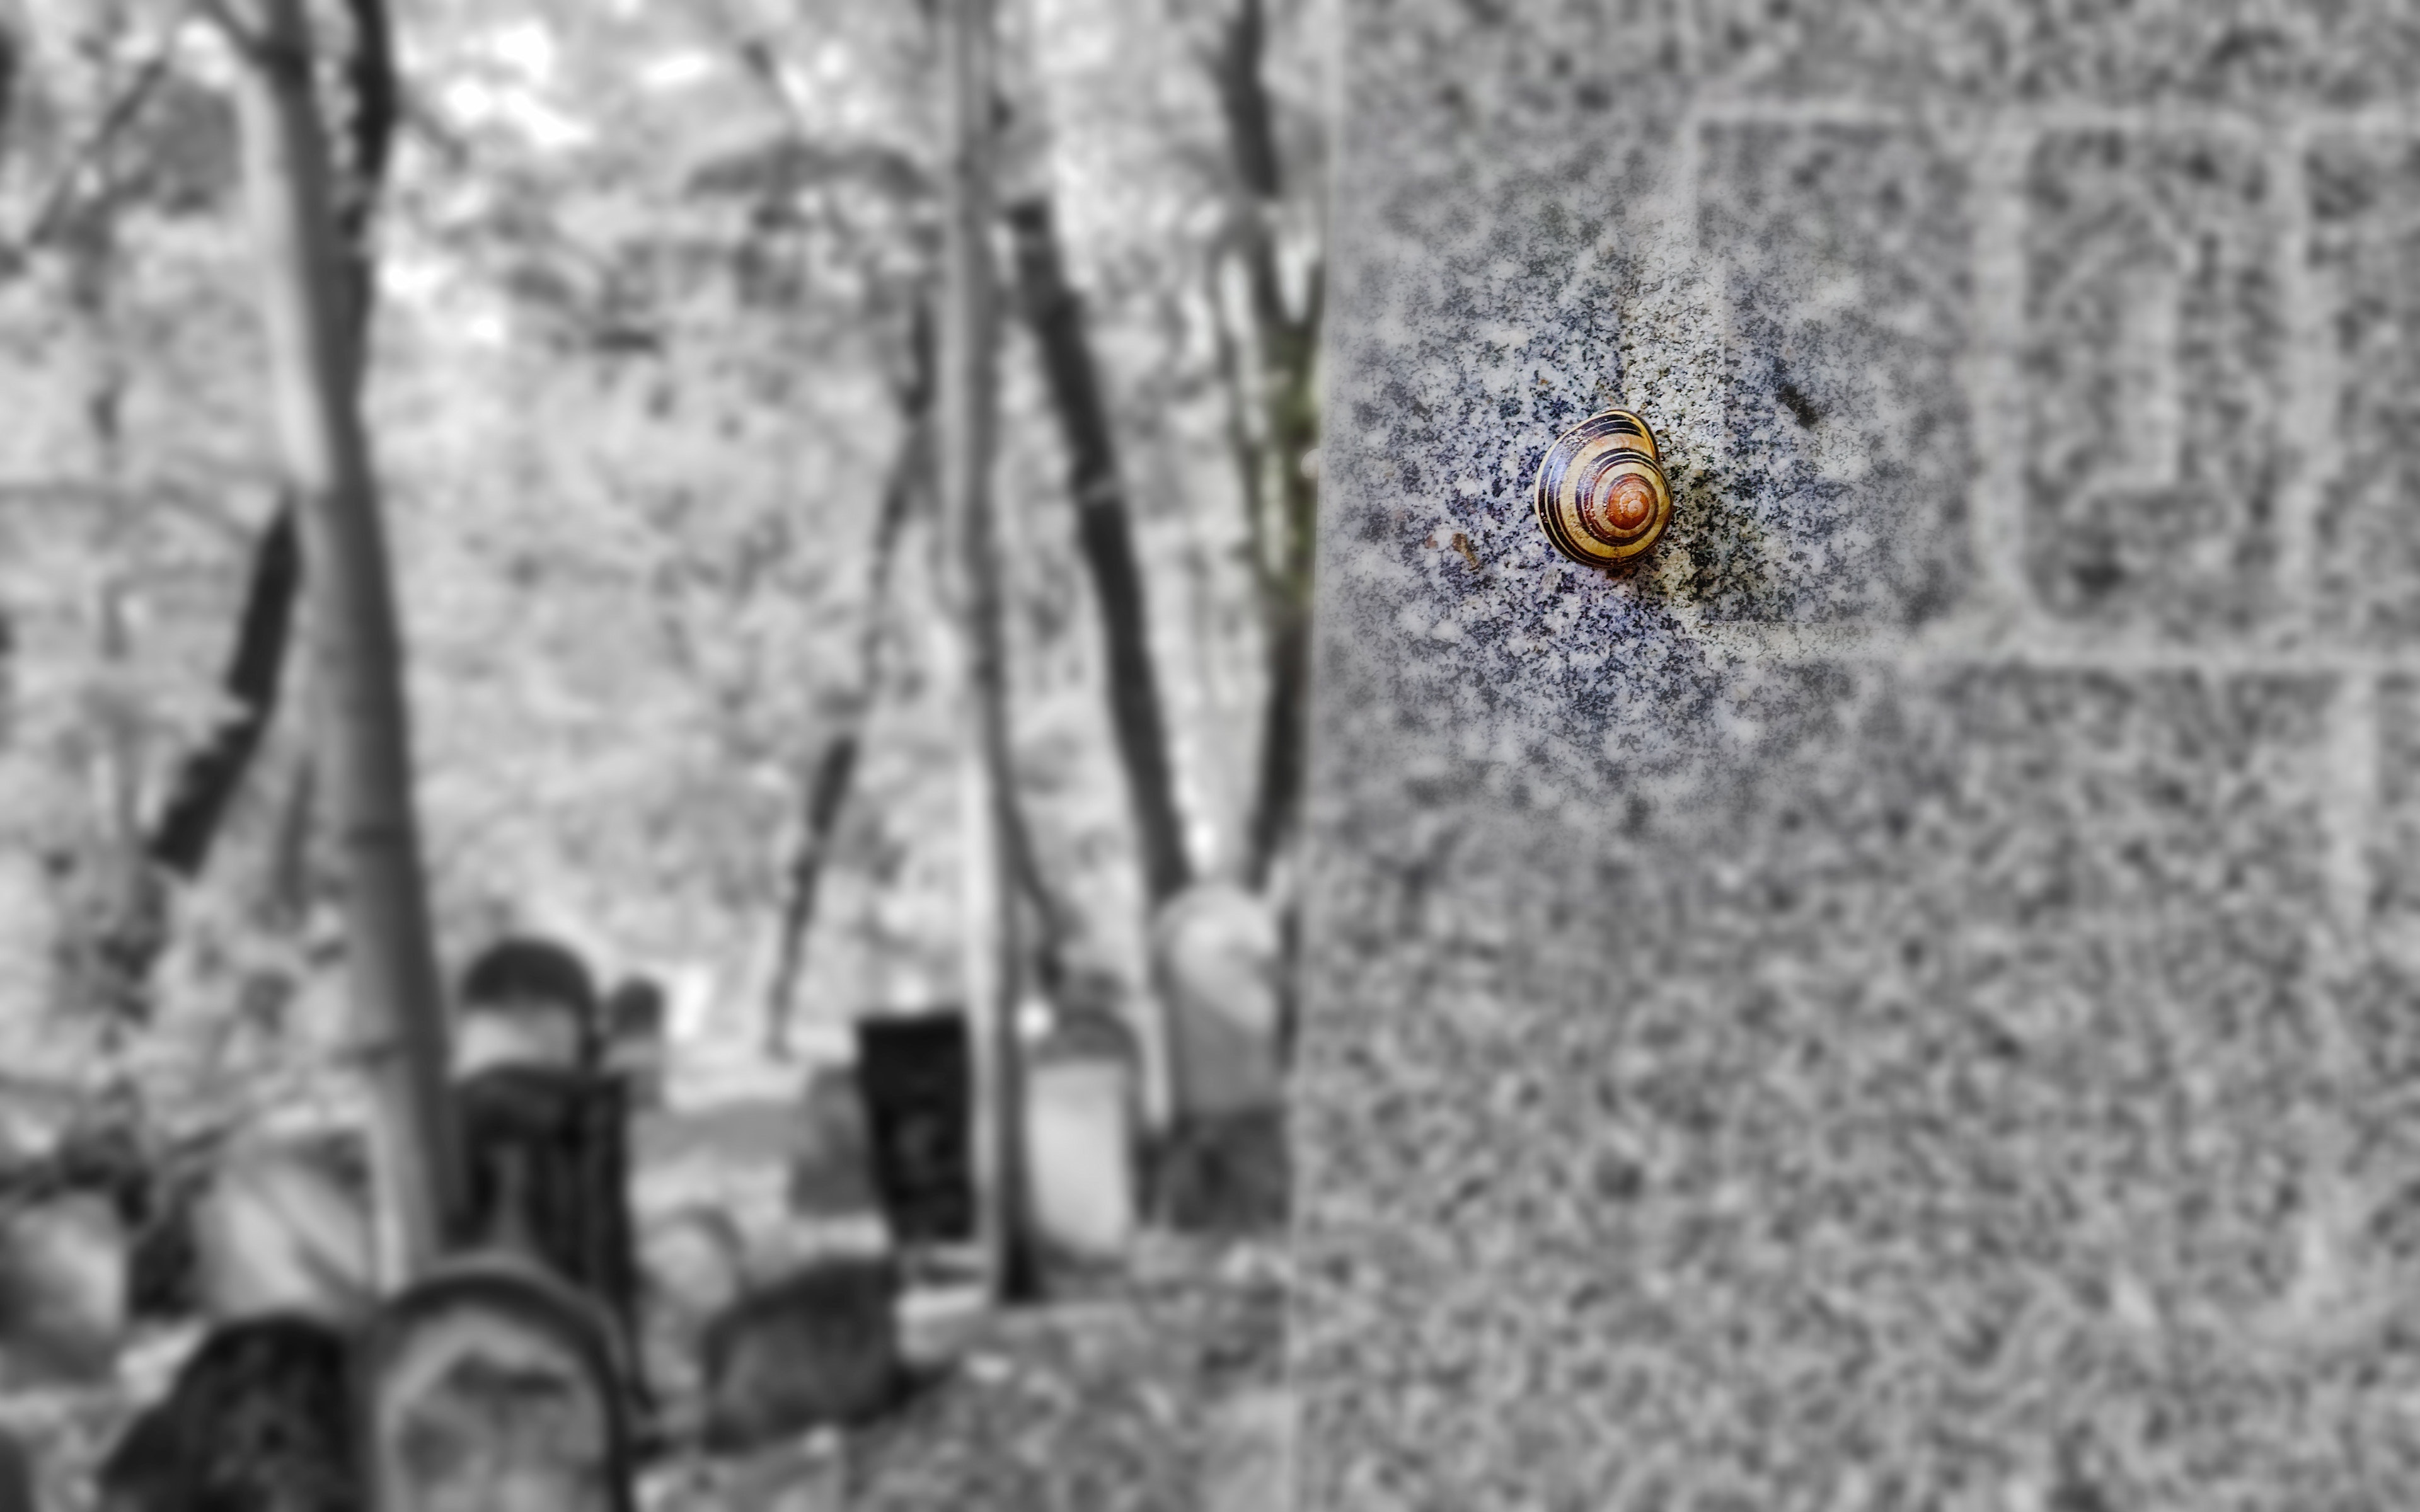 Brown and Black Snail Crawling on Wall, Black and white, Nature, Tombstones, Tomb, HQ Photo